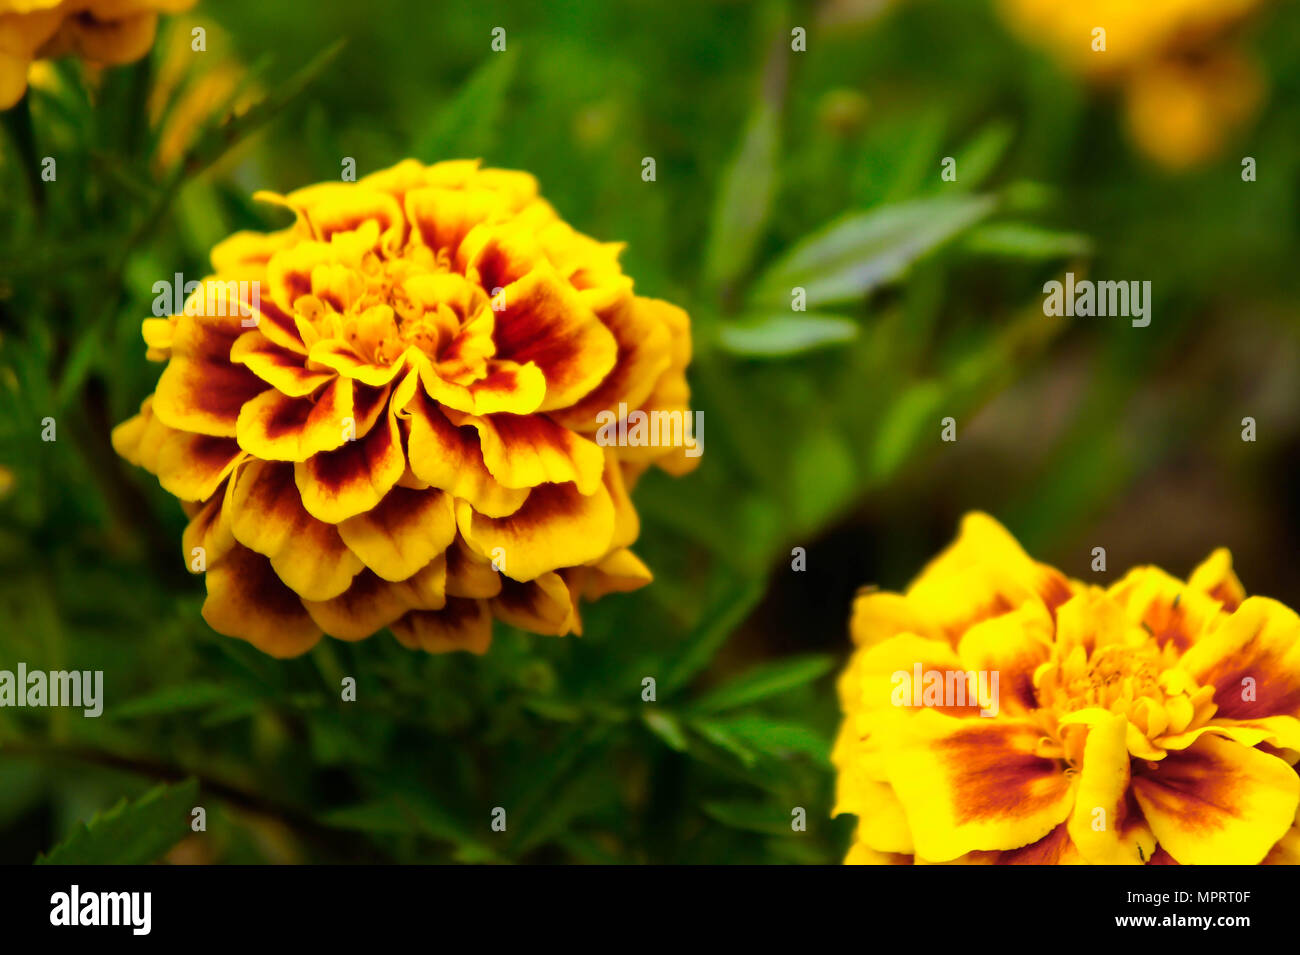 Marigold flowers in the garden on summer yellow flowers beautiful marigold flowers in the garden on summer yellow flowers beautiful flowers on summer in the nice day herb flowers izmirmasajfo